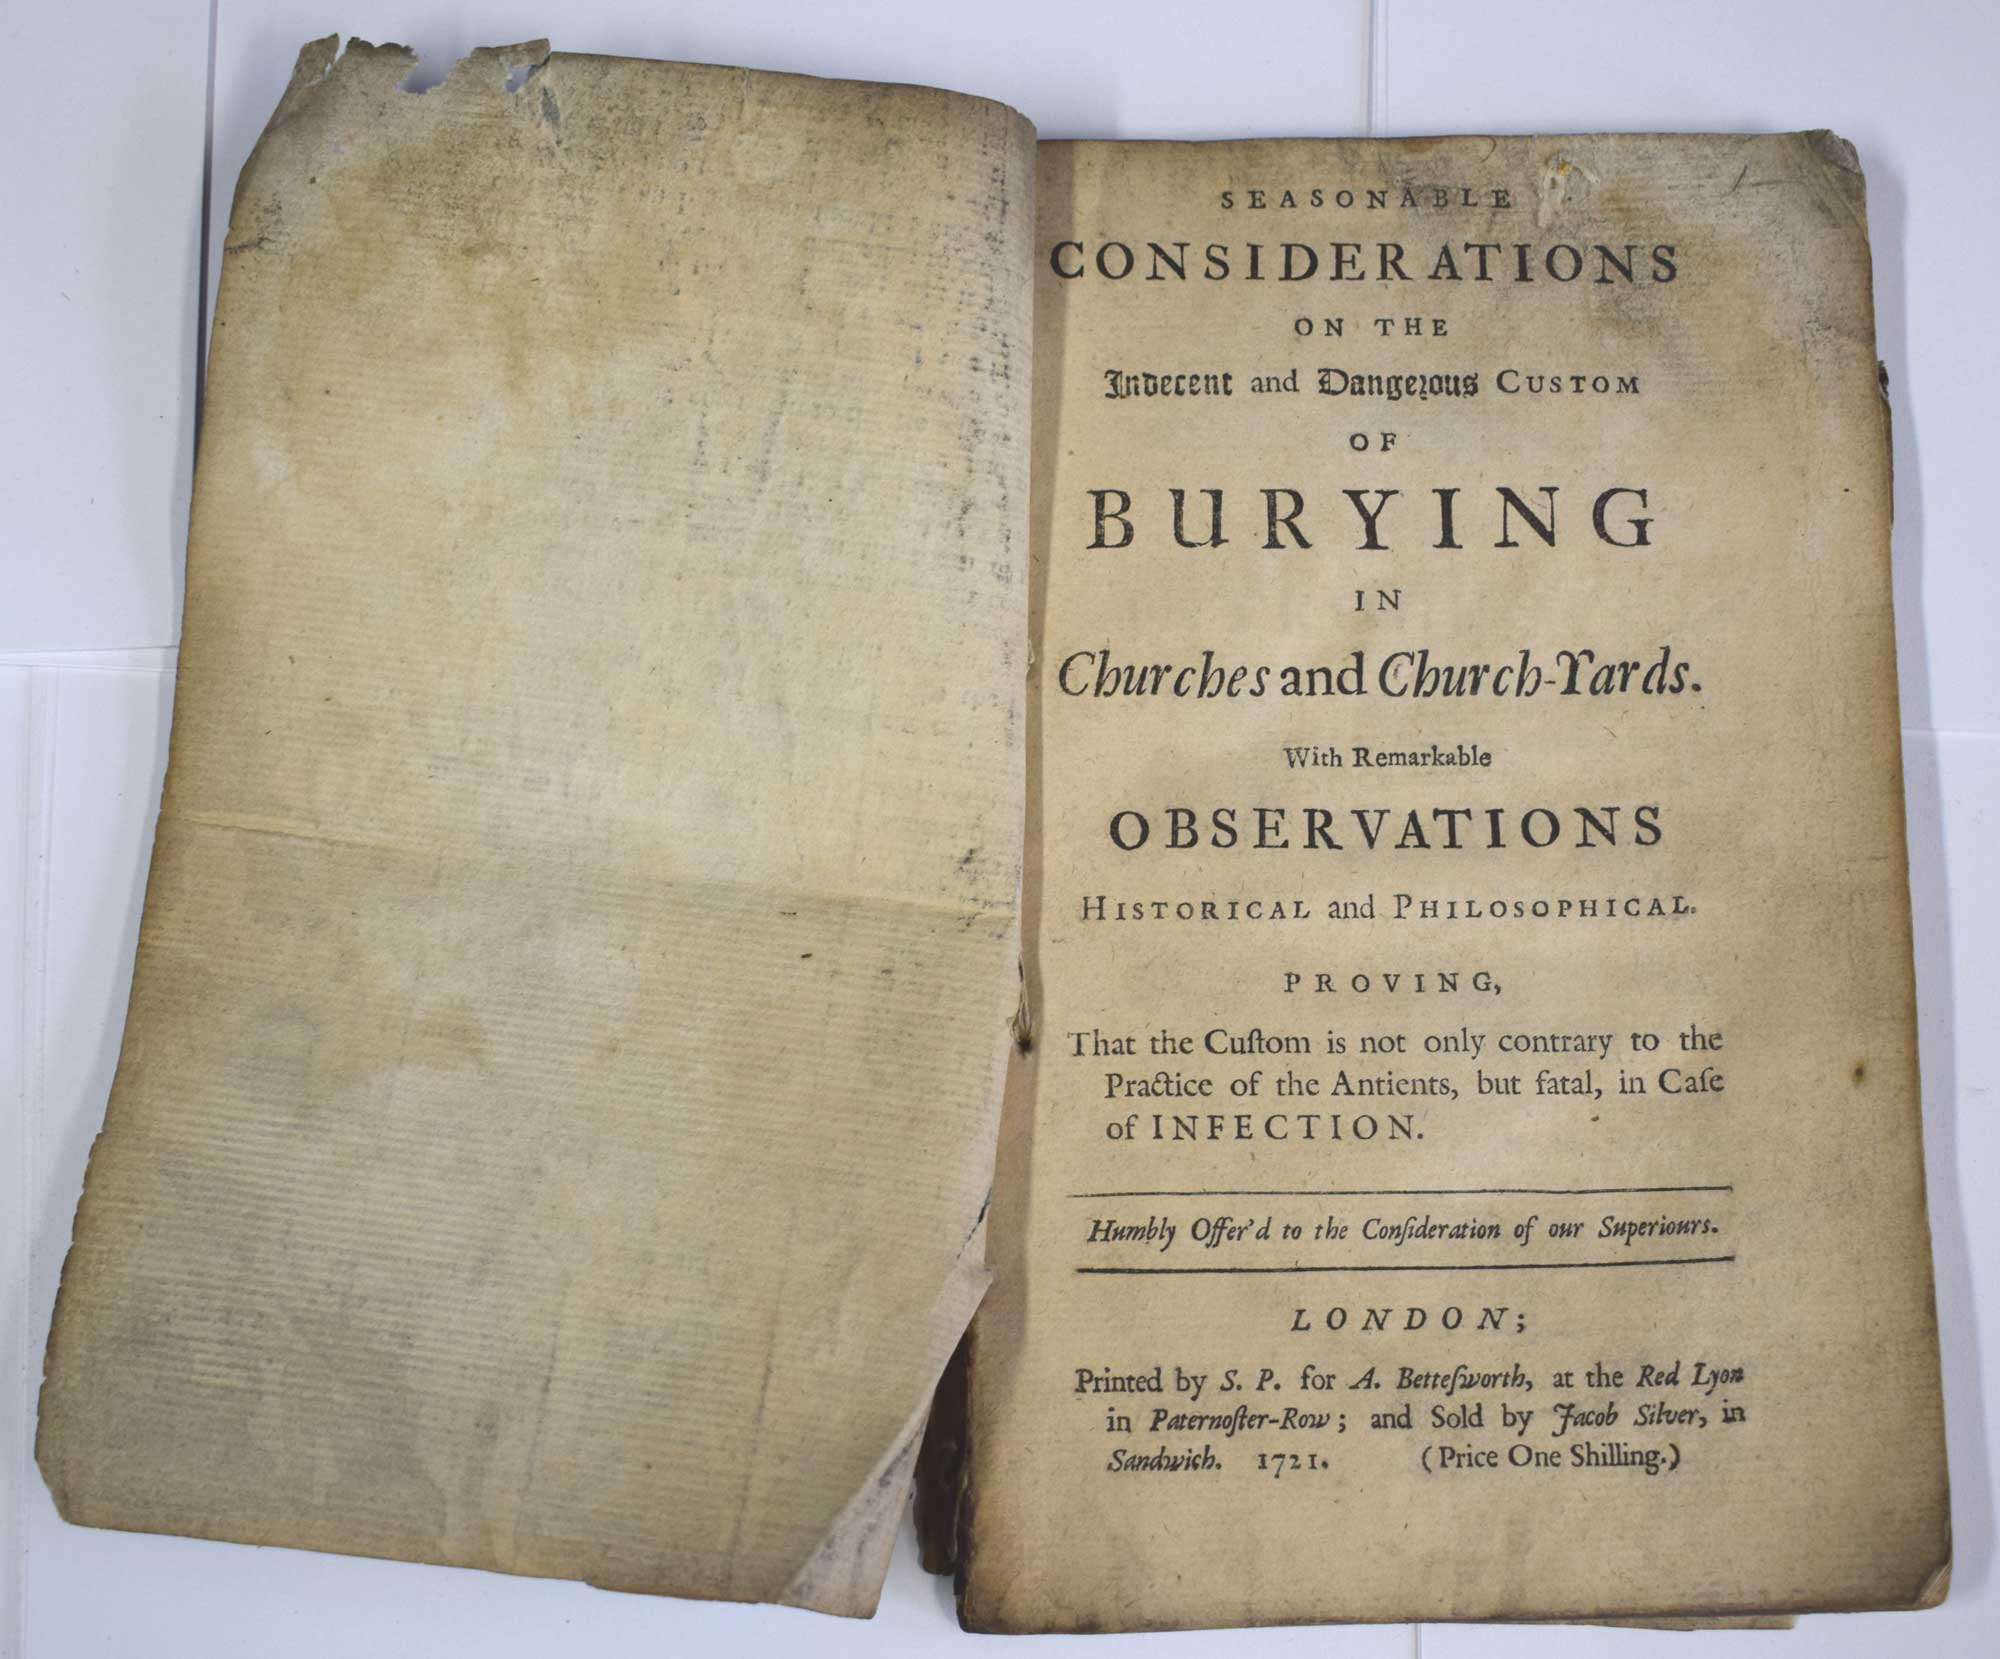 [LEWIS, THOMAS] - Seasonable Considerations on the Indecent and Dangerous Custom of Burying in Churches and Church-Yards. With Remarkable Observations Historical and Philosophical...